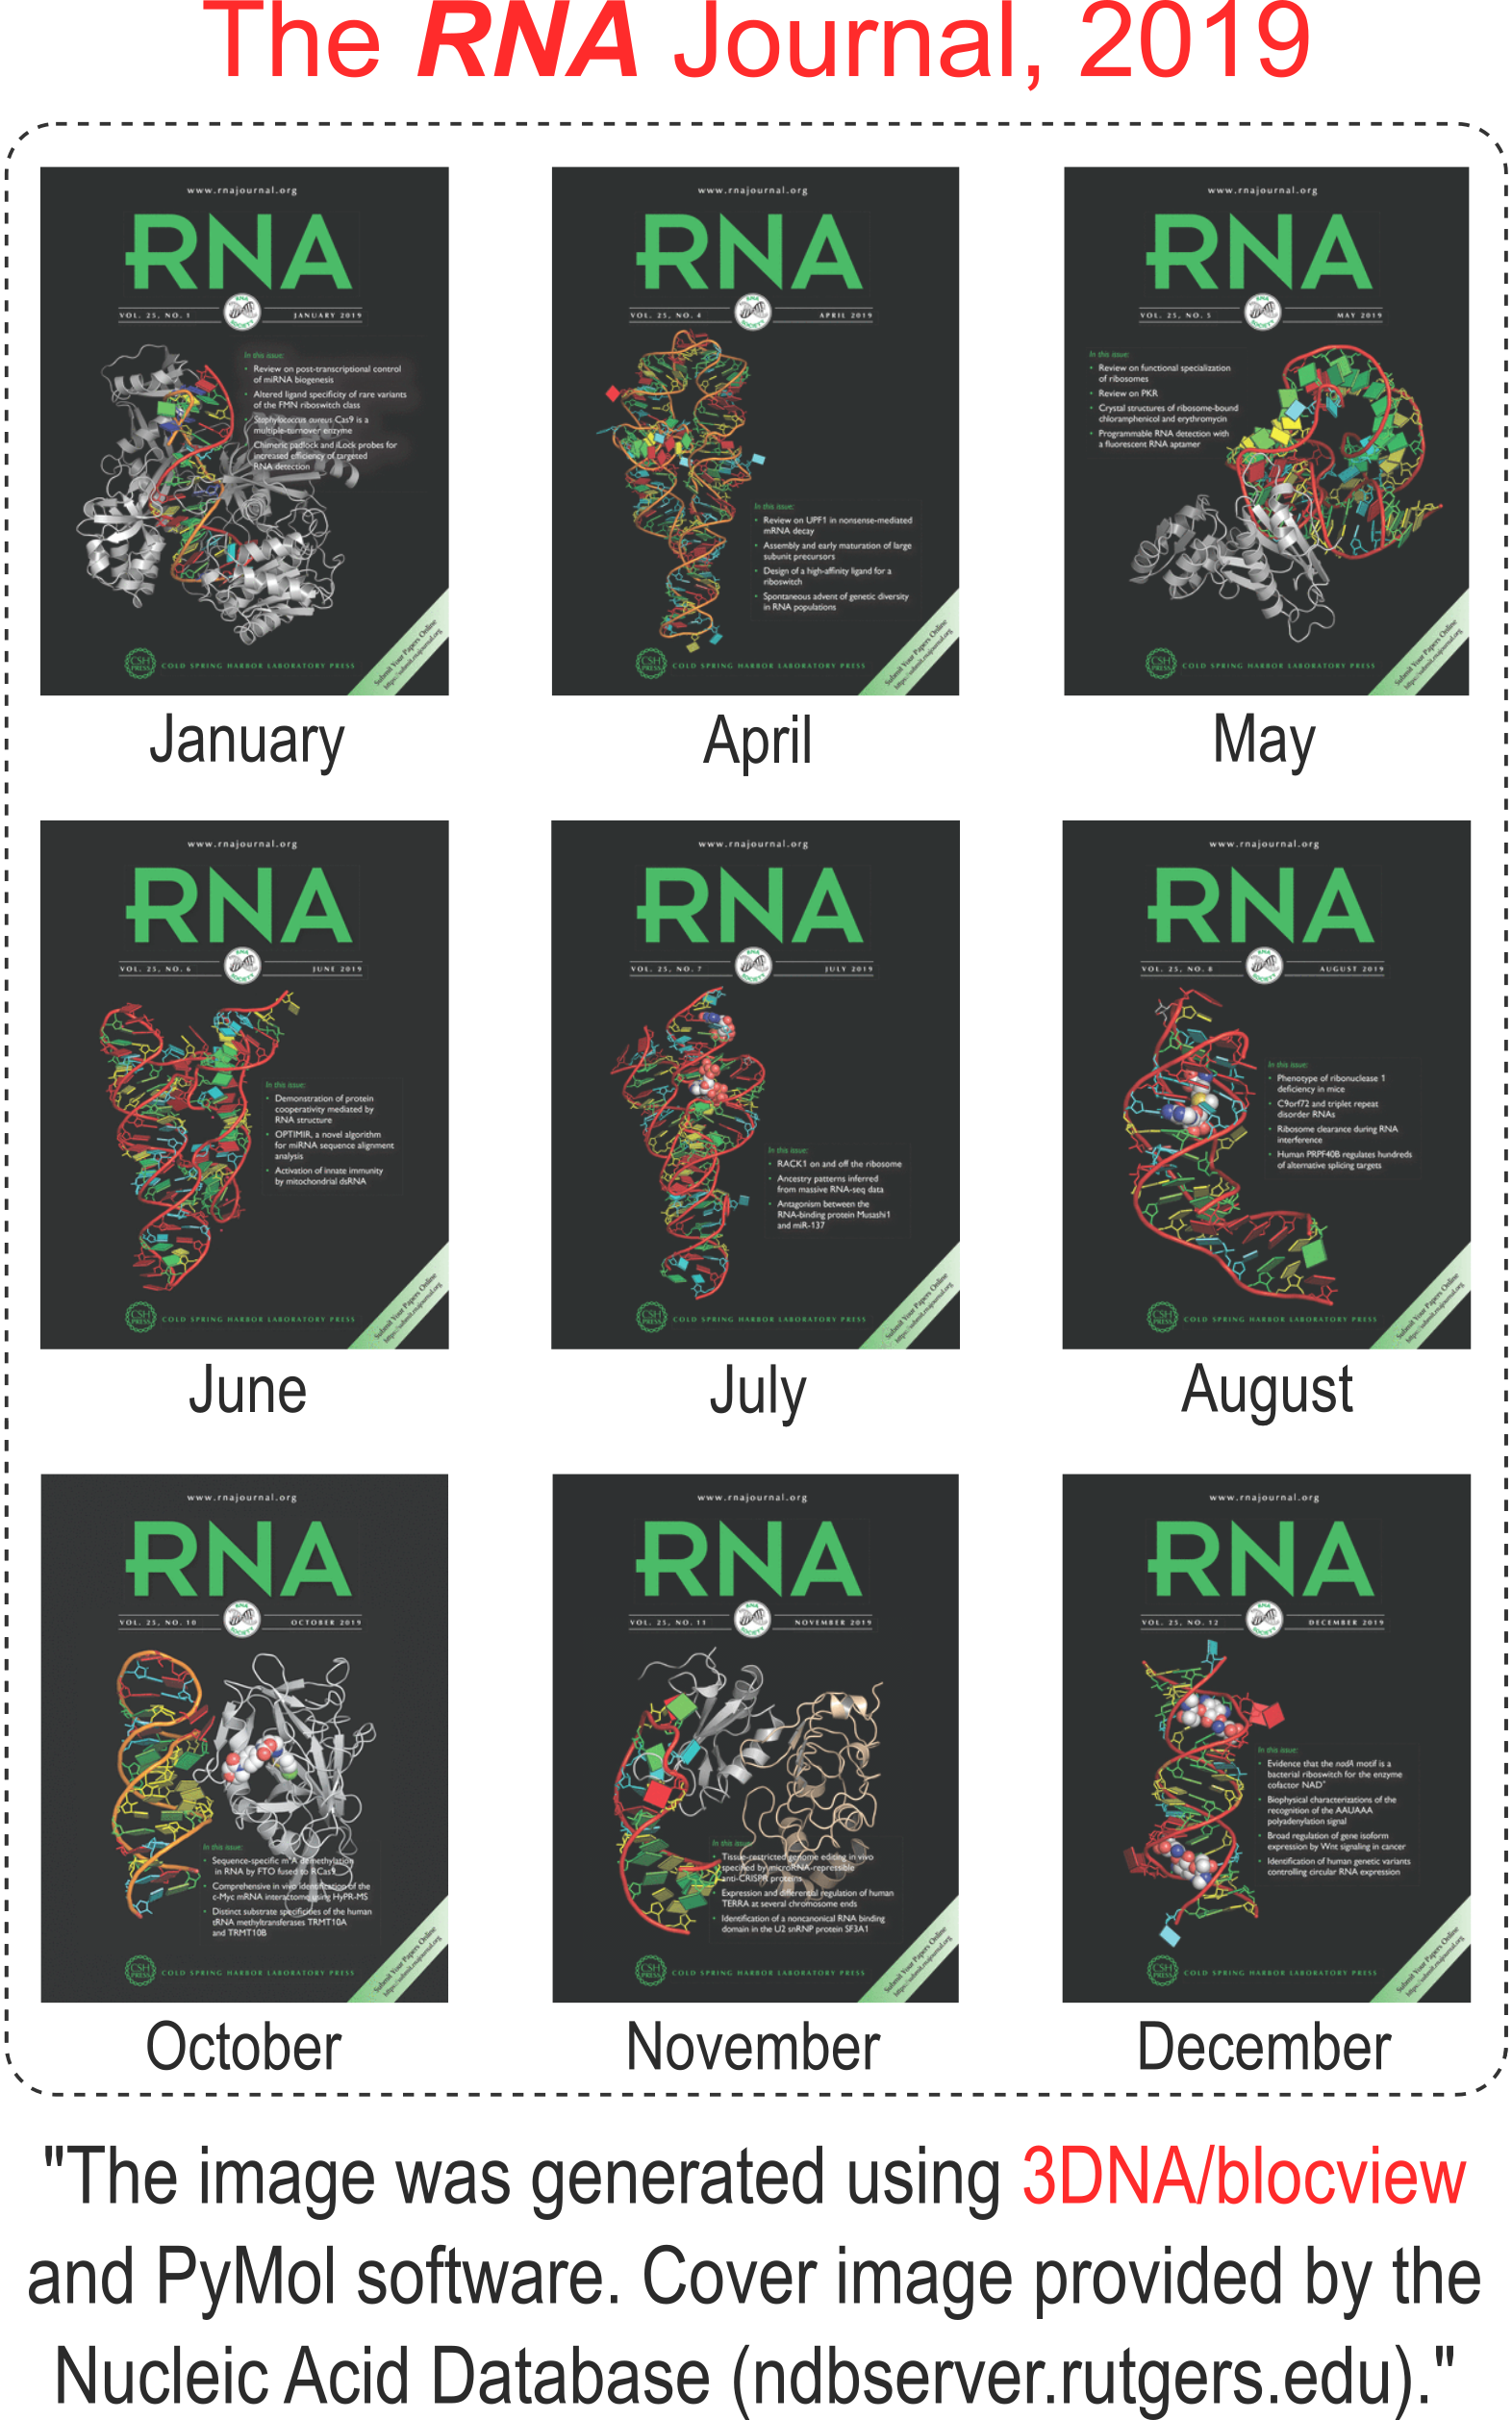 3DNA/blockview-PyMOL cartoon-block schematics in the covers of the RNA journal in 2019